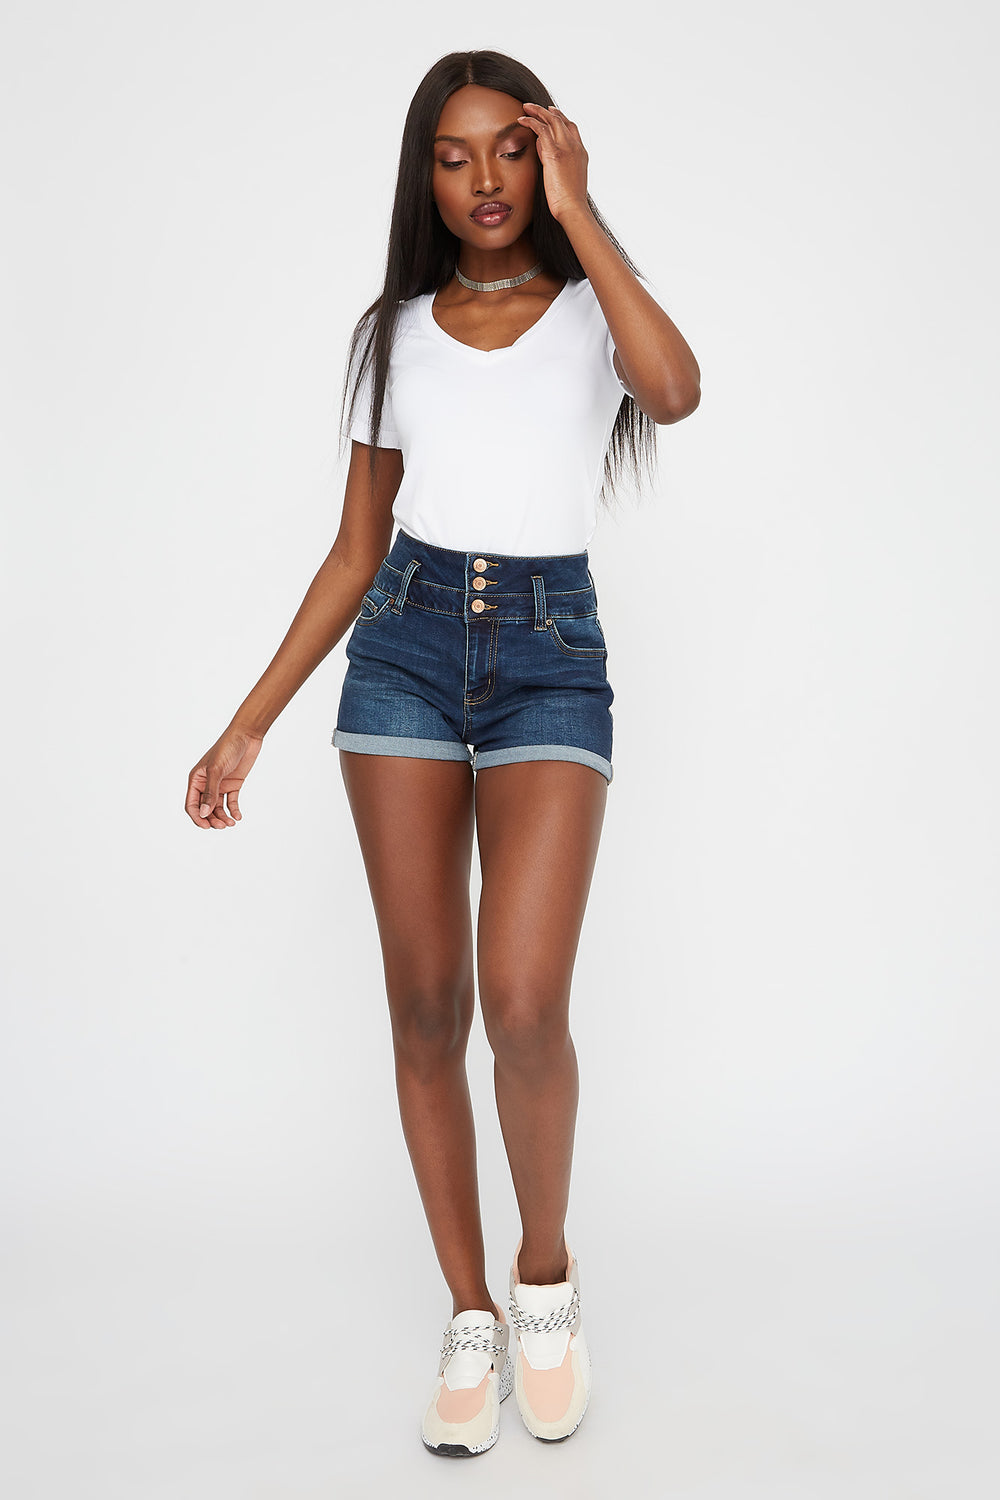 3-Tier High-Rise Push-Up Dark Wash Denim Short Denim Blue